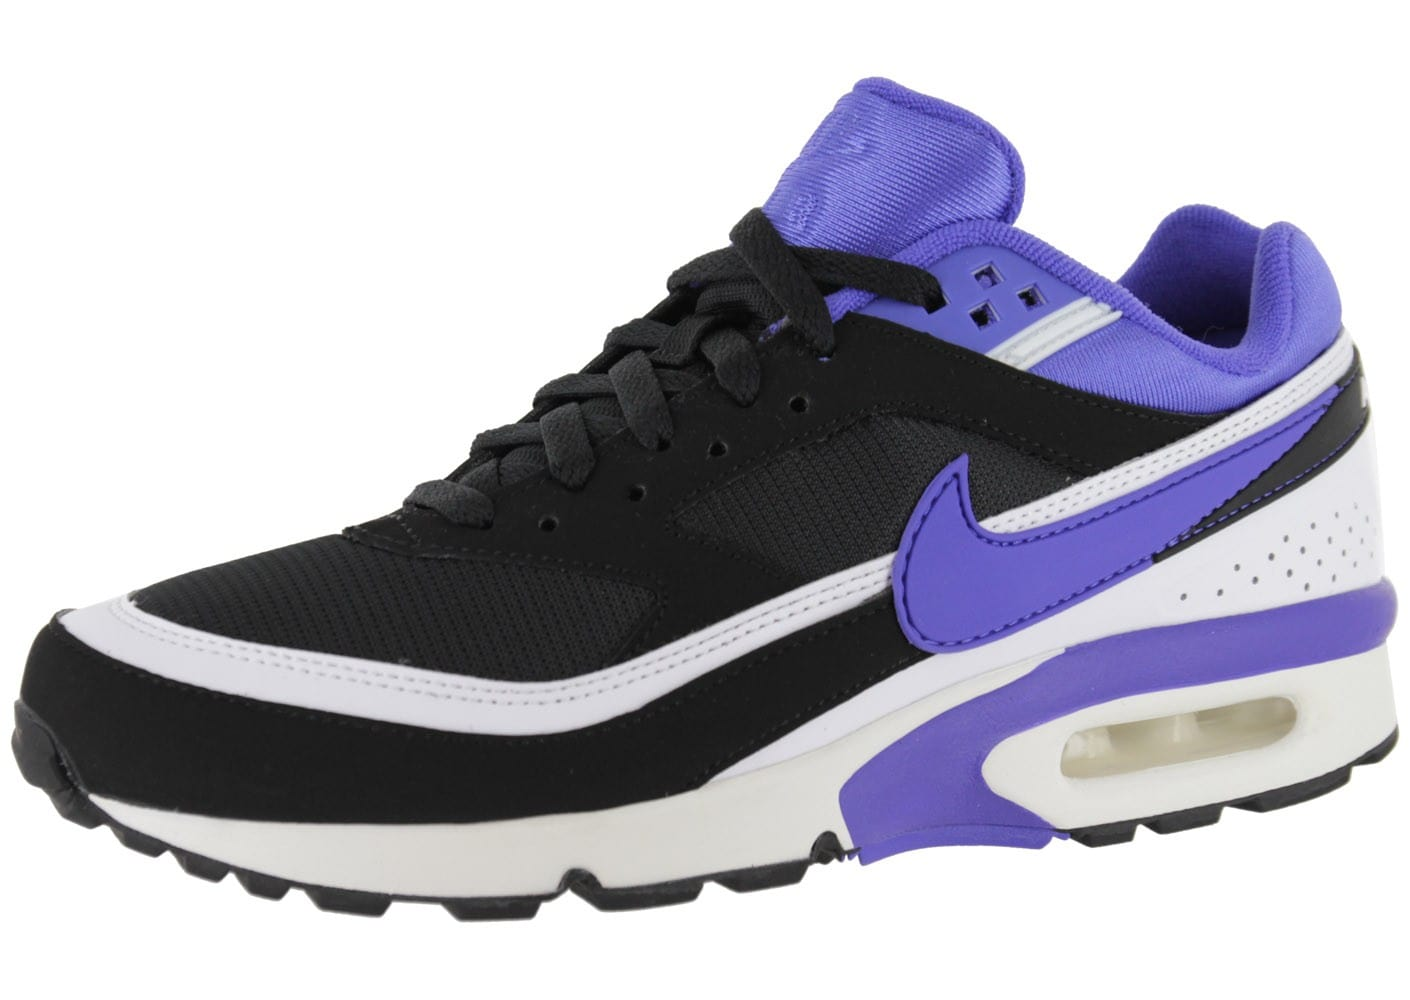 nike air max classic bw femme. Black Bedroom Furniture Sets. Home Design Ideas